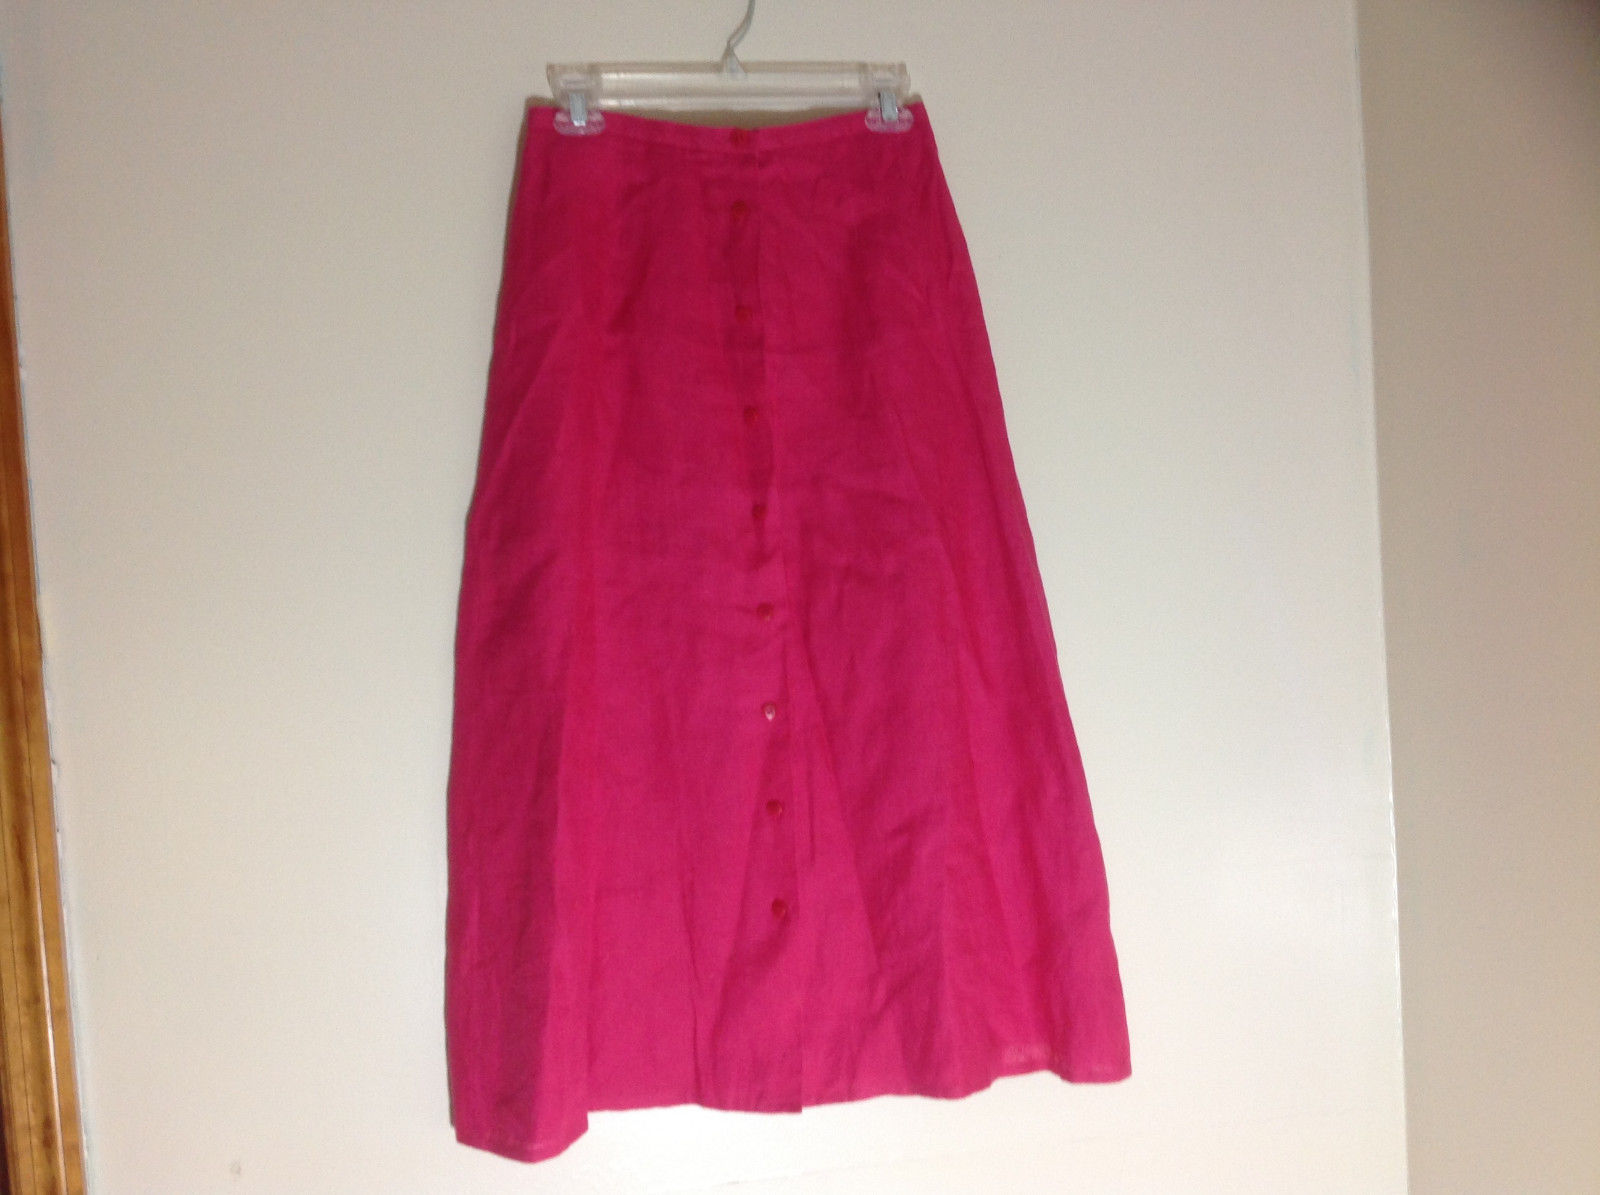 Talbots Pink Button Up Mid Length Skirt Size 6